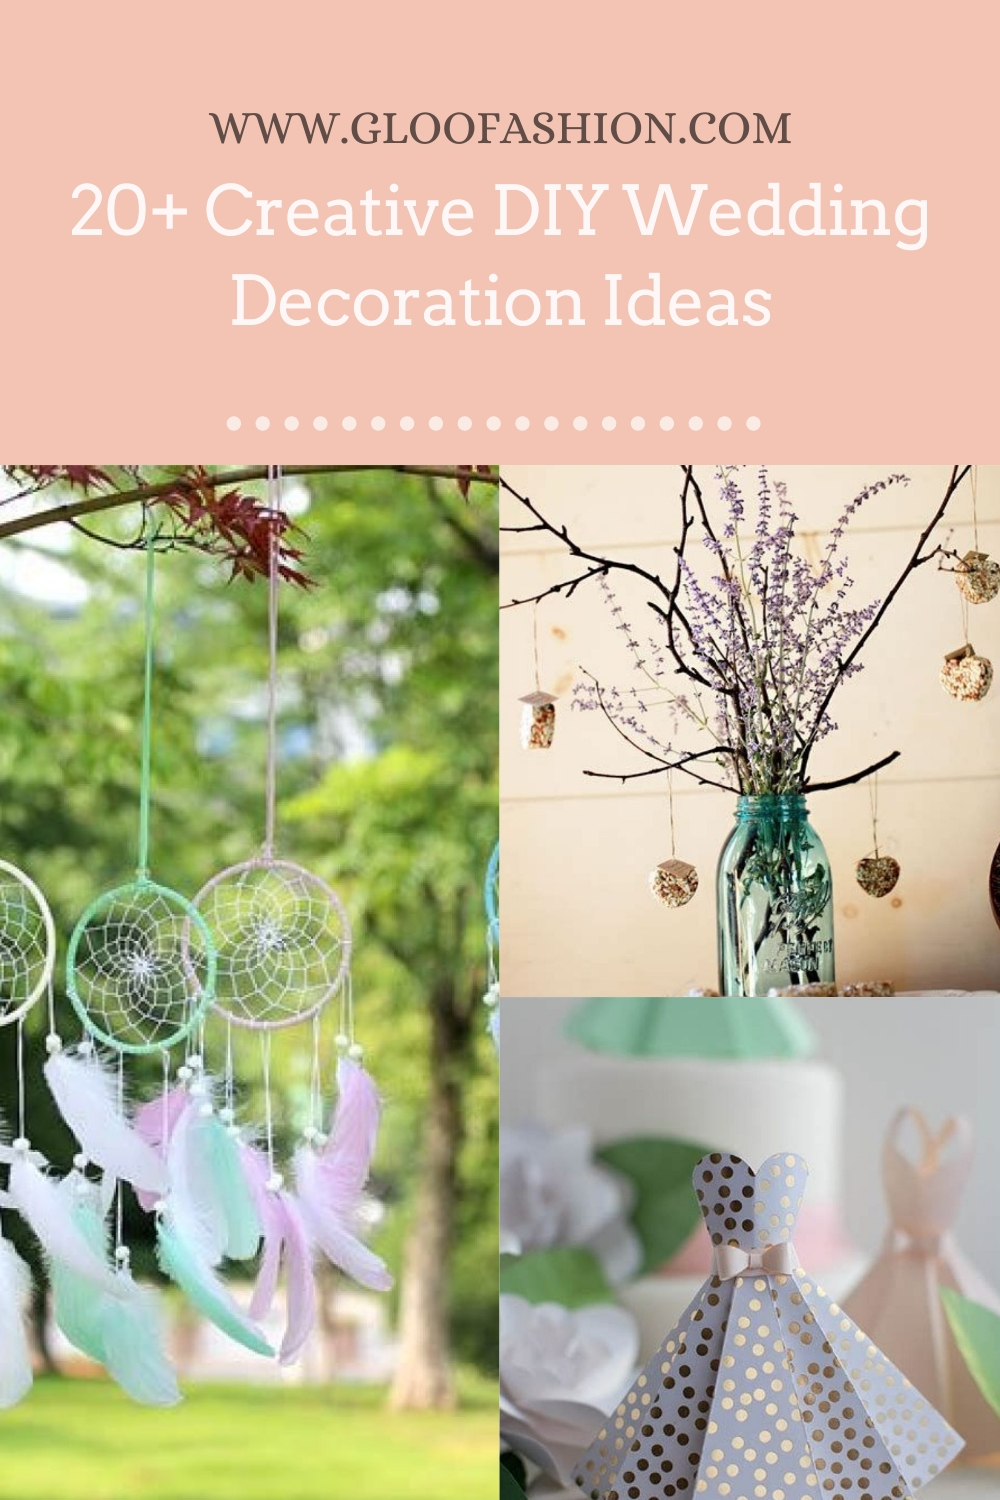 20+ Creative DIY Wedding Decoration Ideas